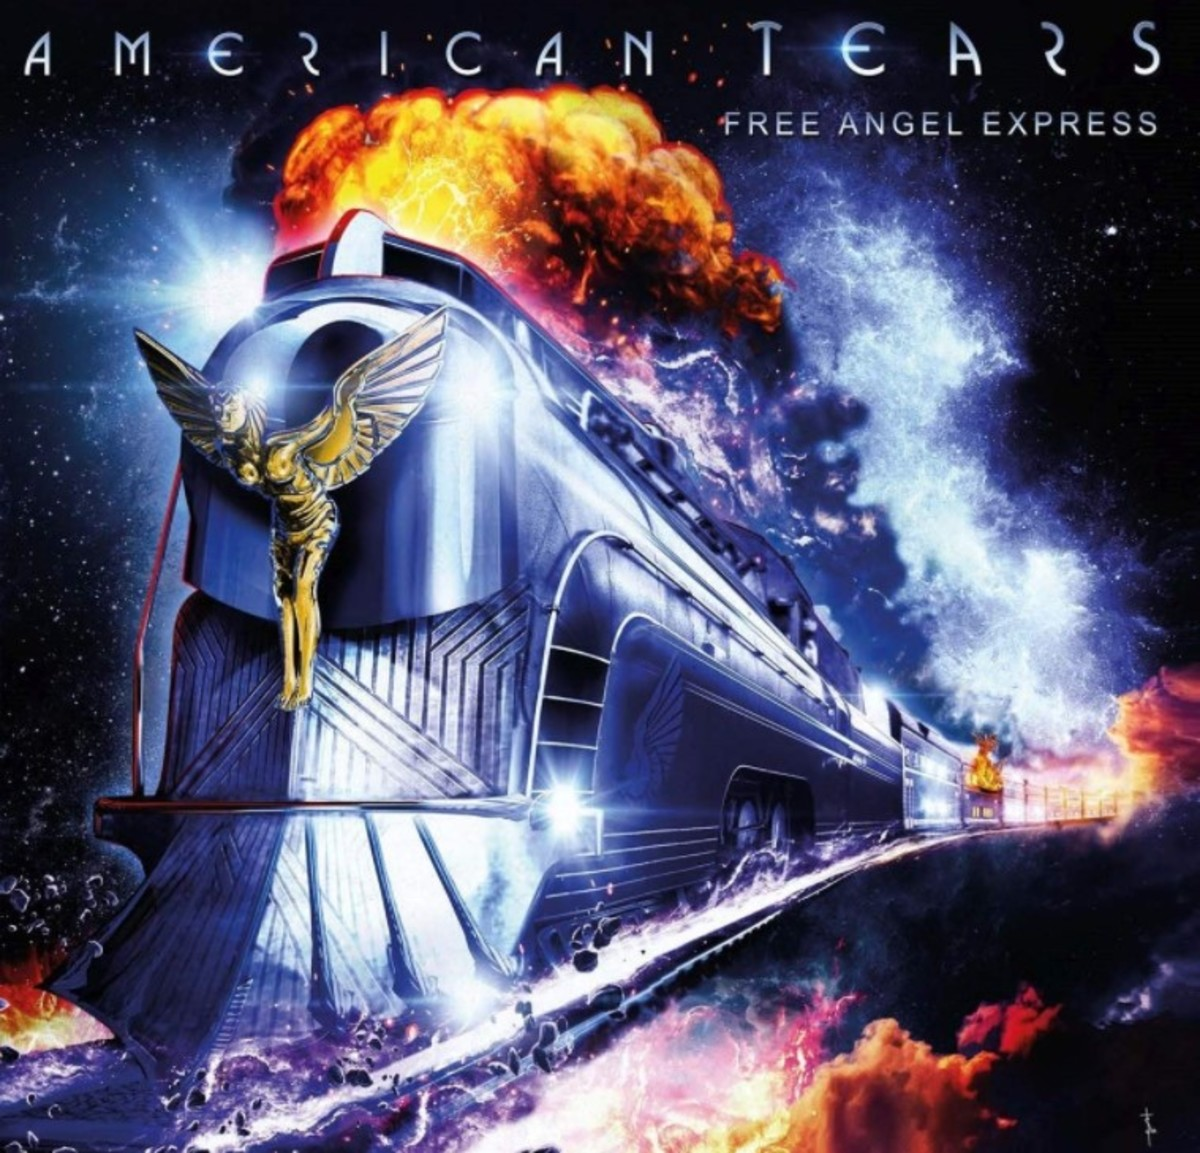 American Tears Free Angel Express CD cover